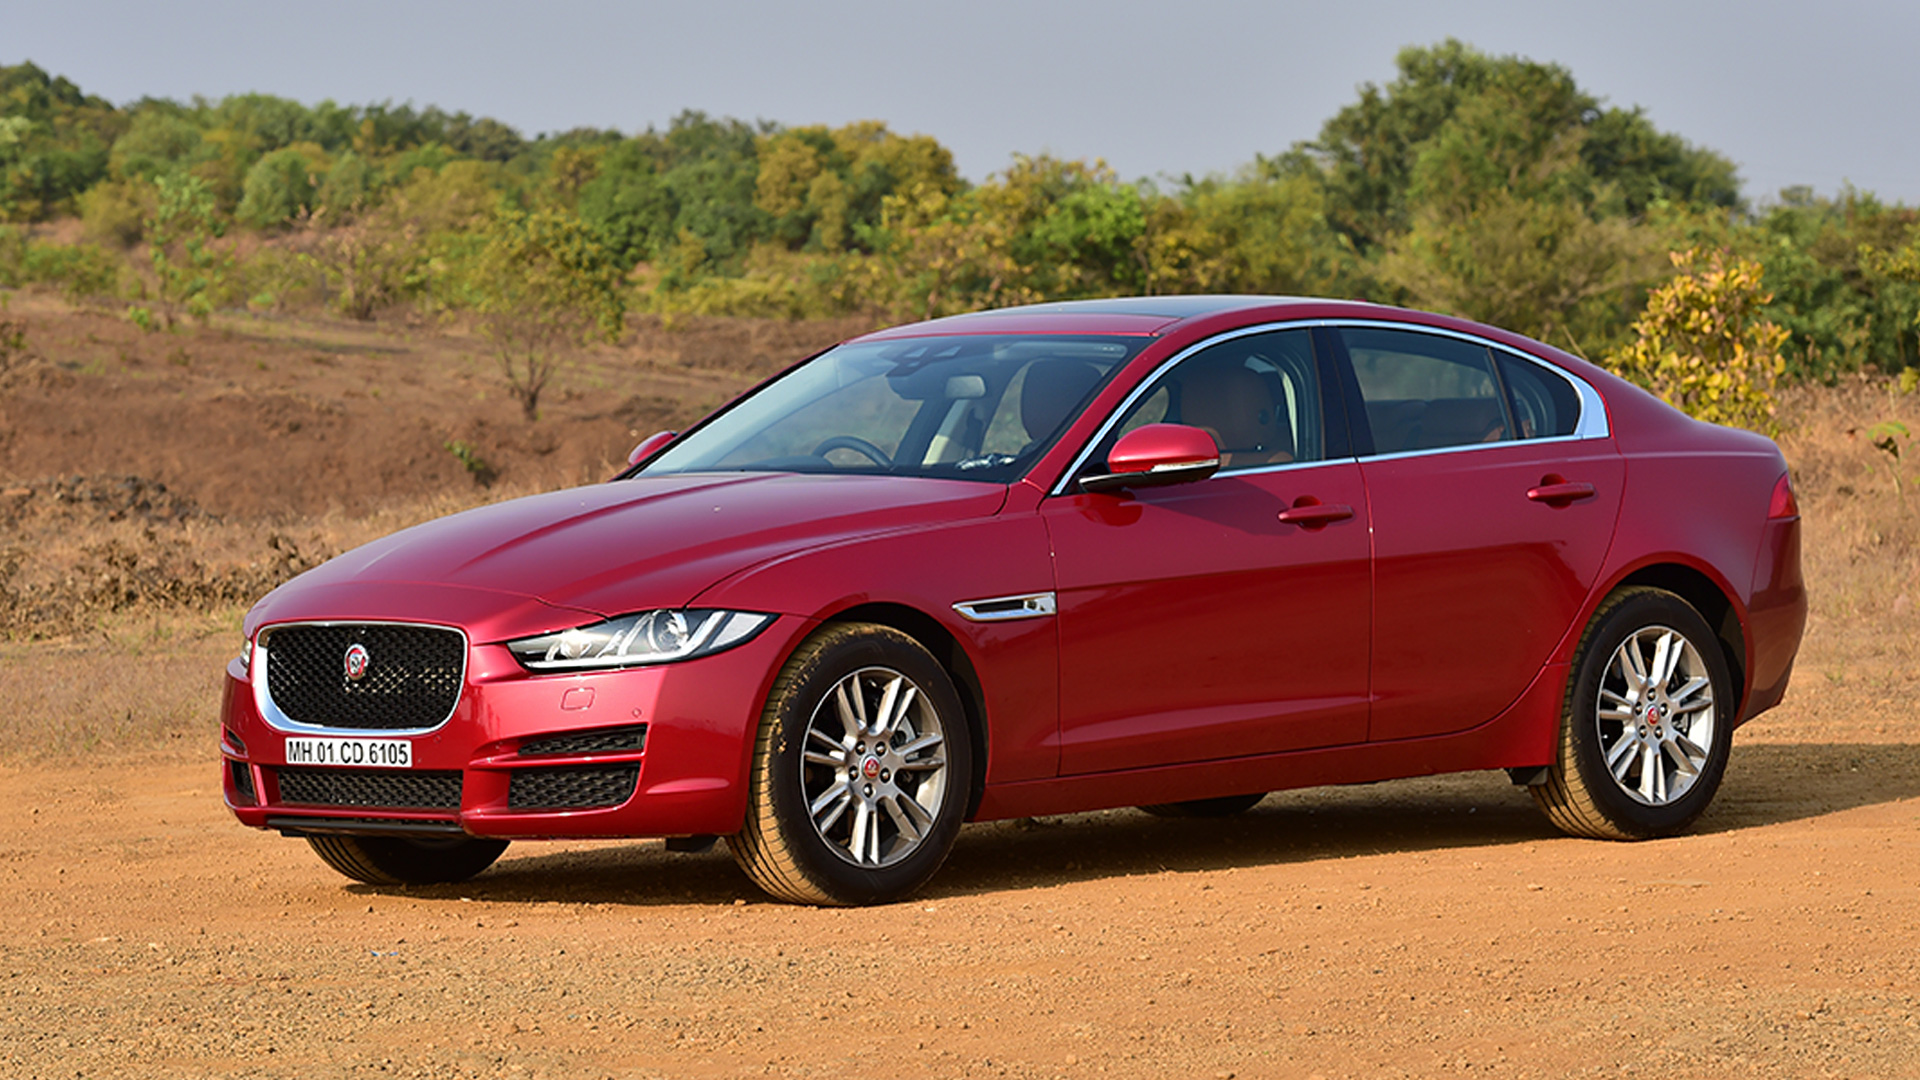 jaguar xe 2017 pure diesel price mileage reviews specification gallery overdrive. Black Bedroom Furniture Sets. Home Design Ideas